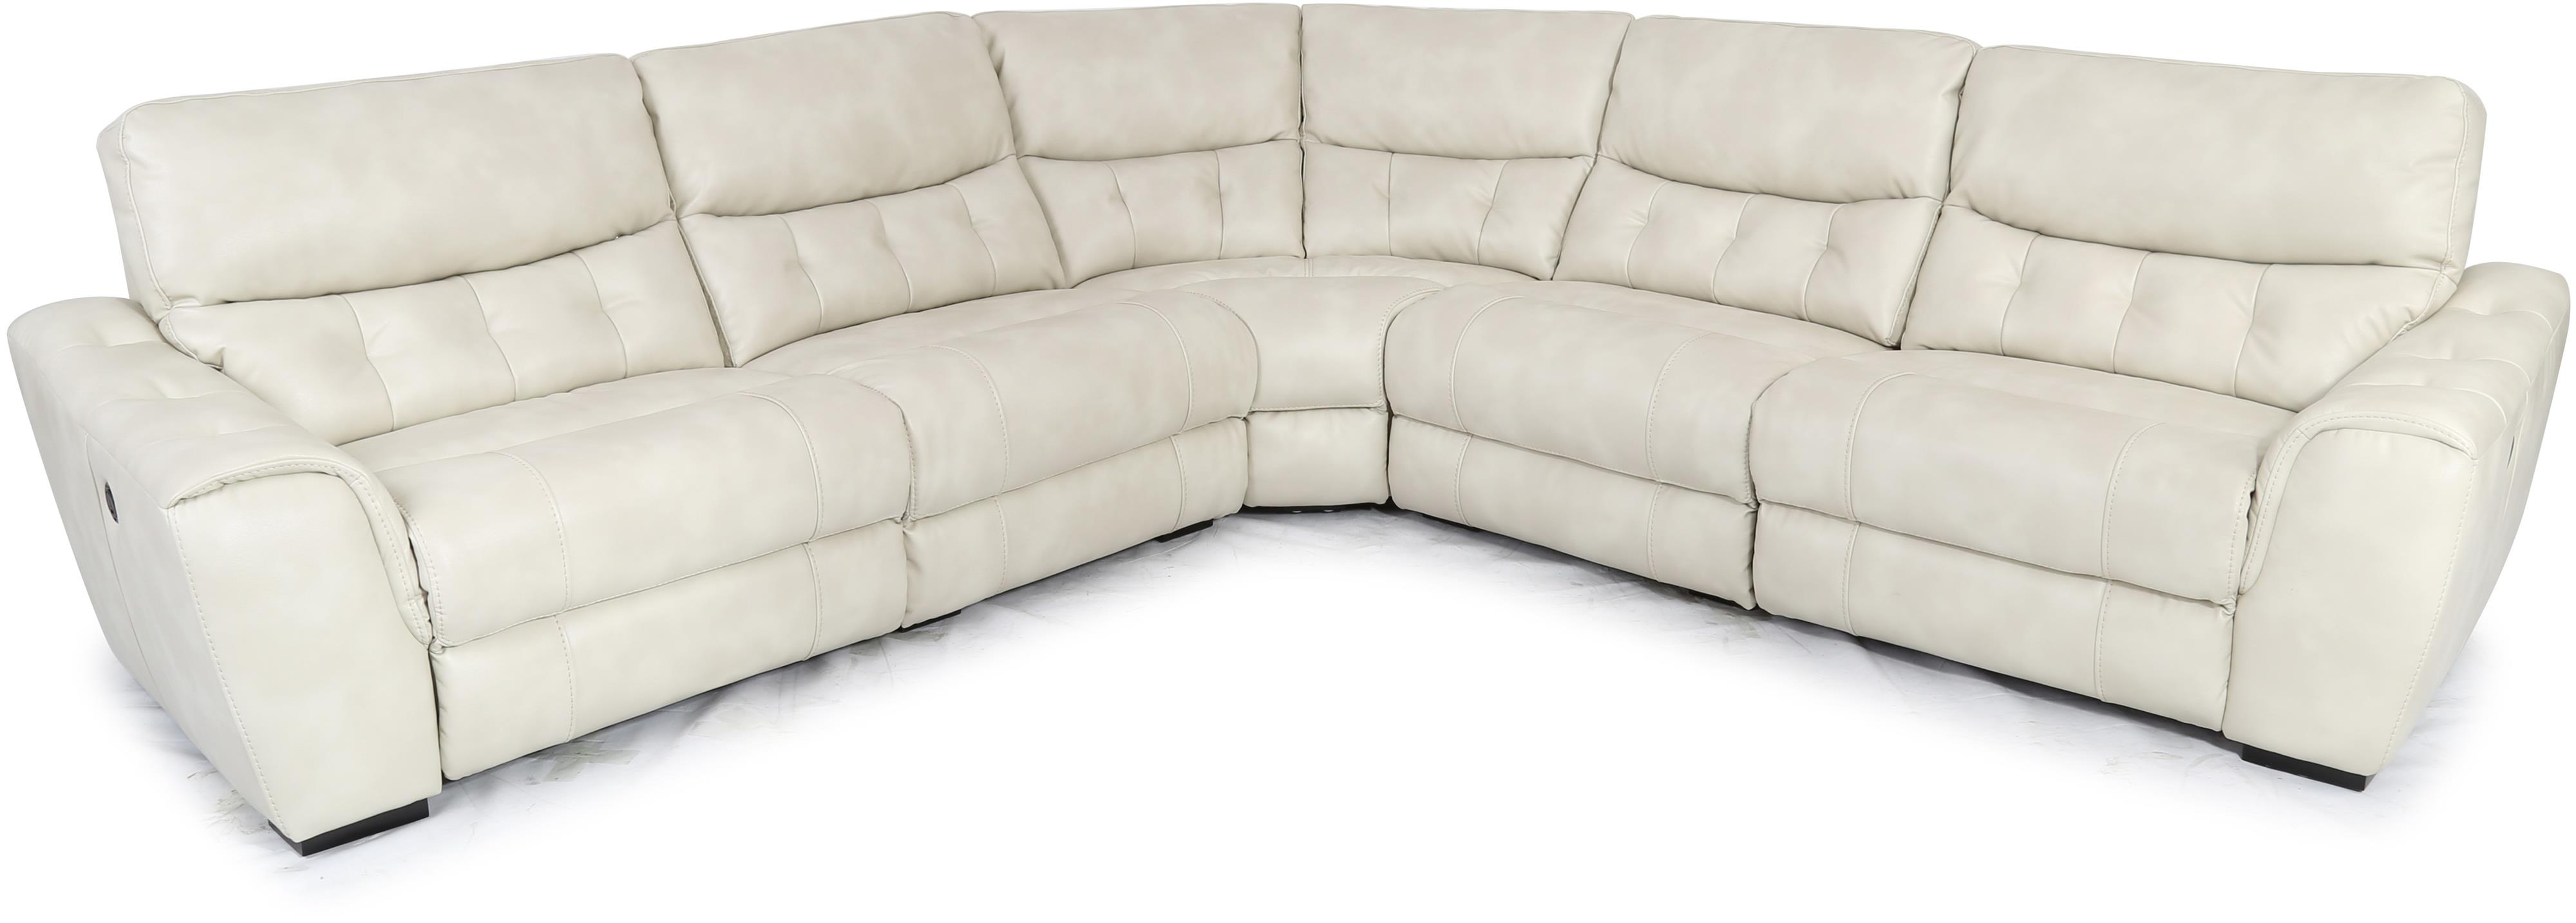 1005 Contemporary Sectional by Cheers at Lagniappe Home Store